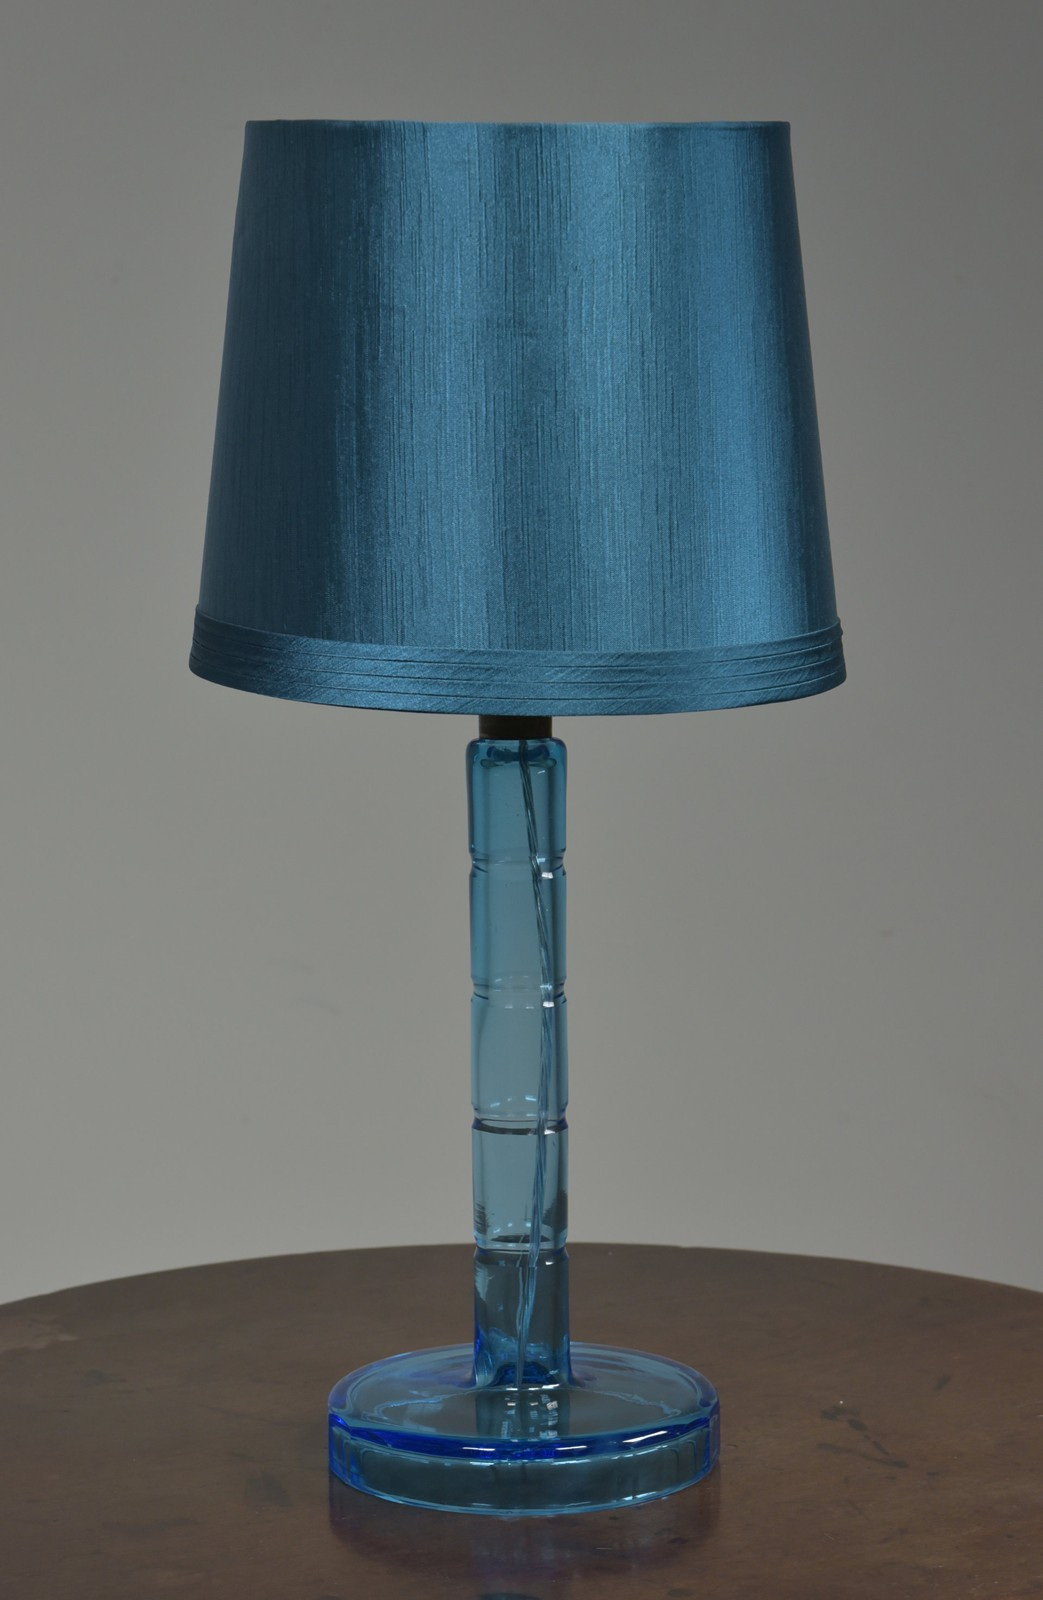 Zoom; Vintage Blue Glass Table Lamp Haes Antiques DSC_6883CR  FM_main_636461922568601787